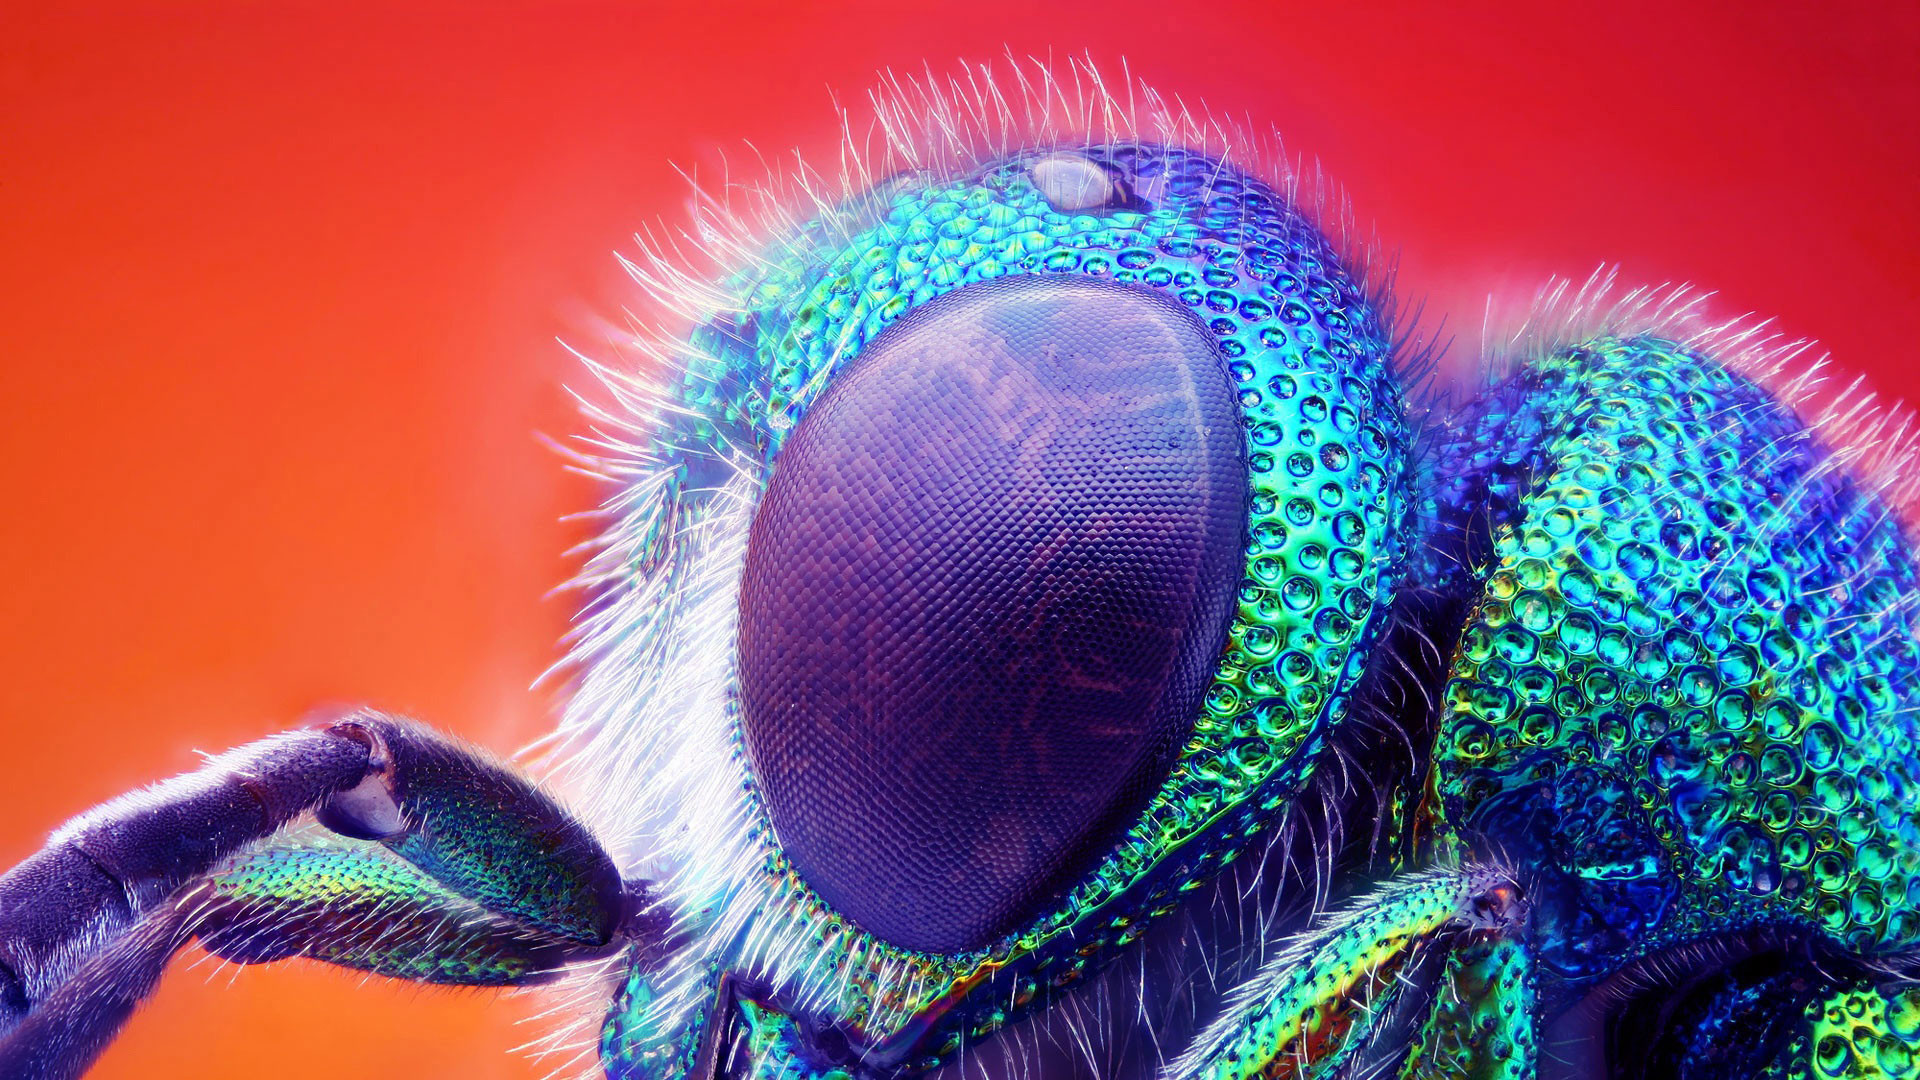 Macro Photography Wallpaper with bugs life – Eye of fly in high resolution